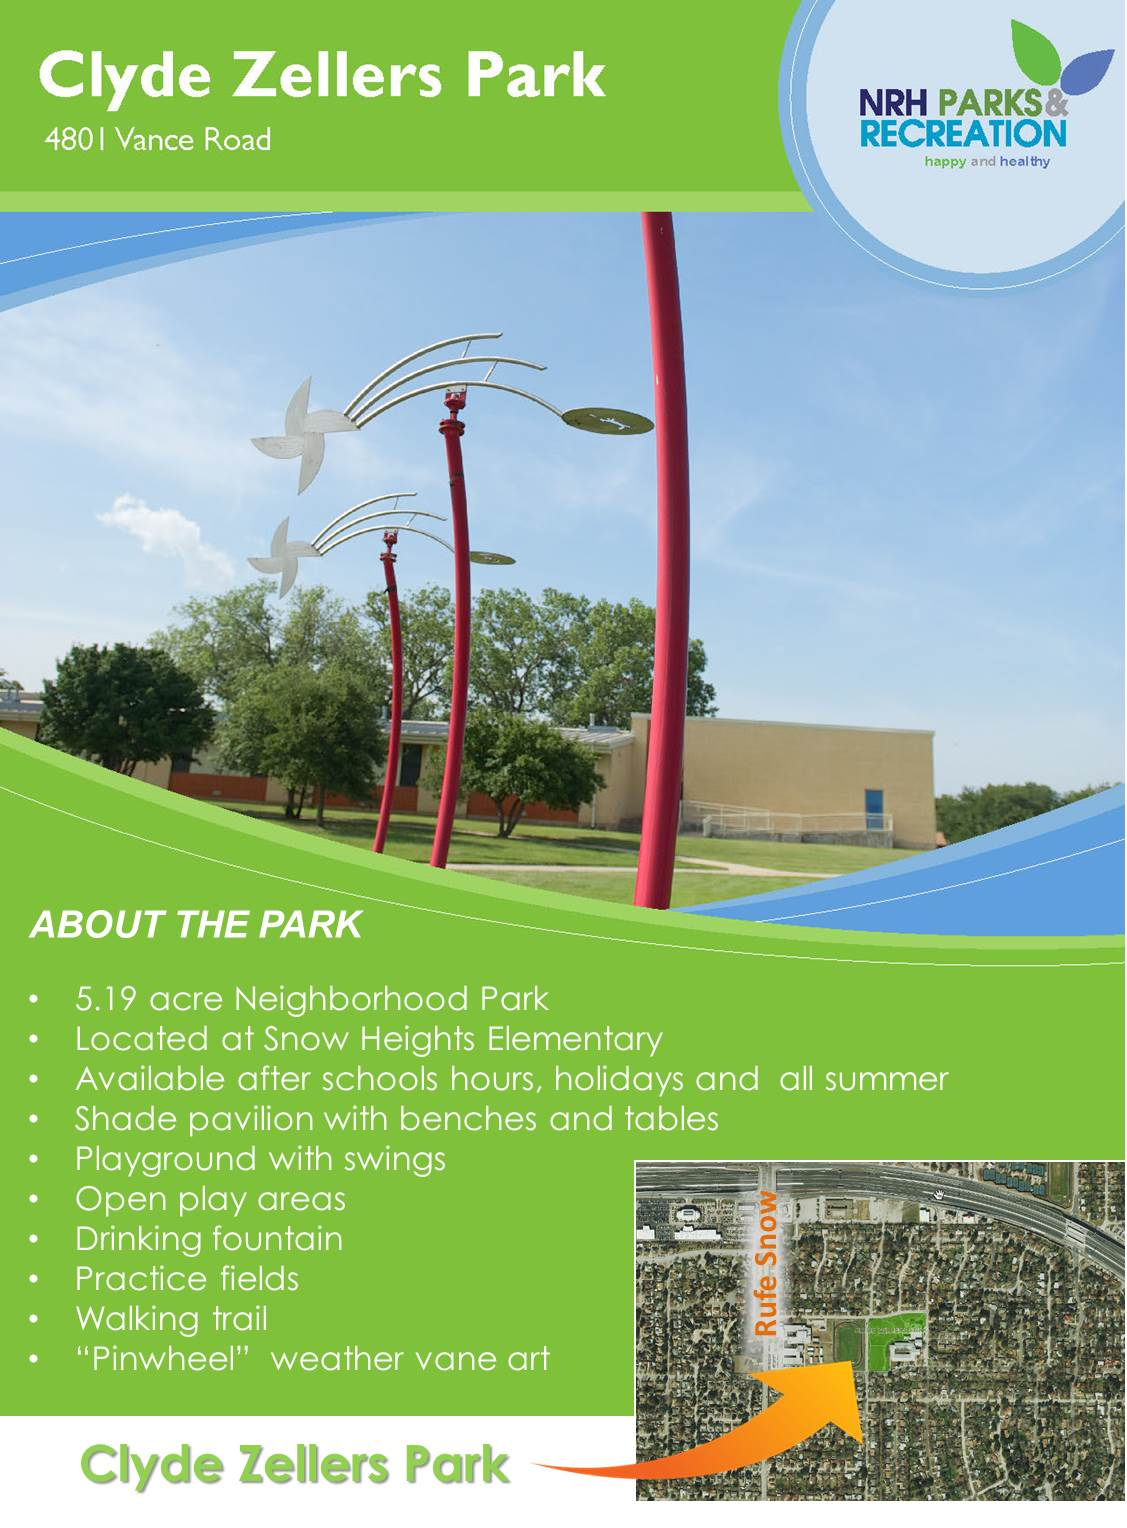 Clyde Zellers Park Fact Sheet.jpg